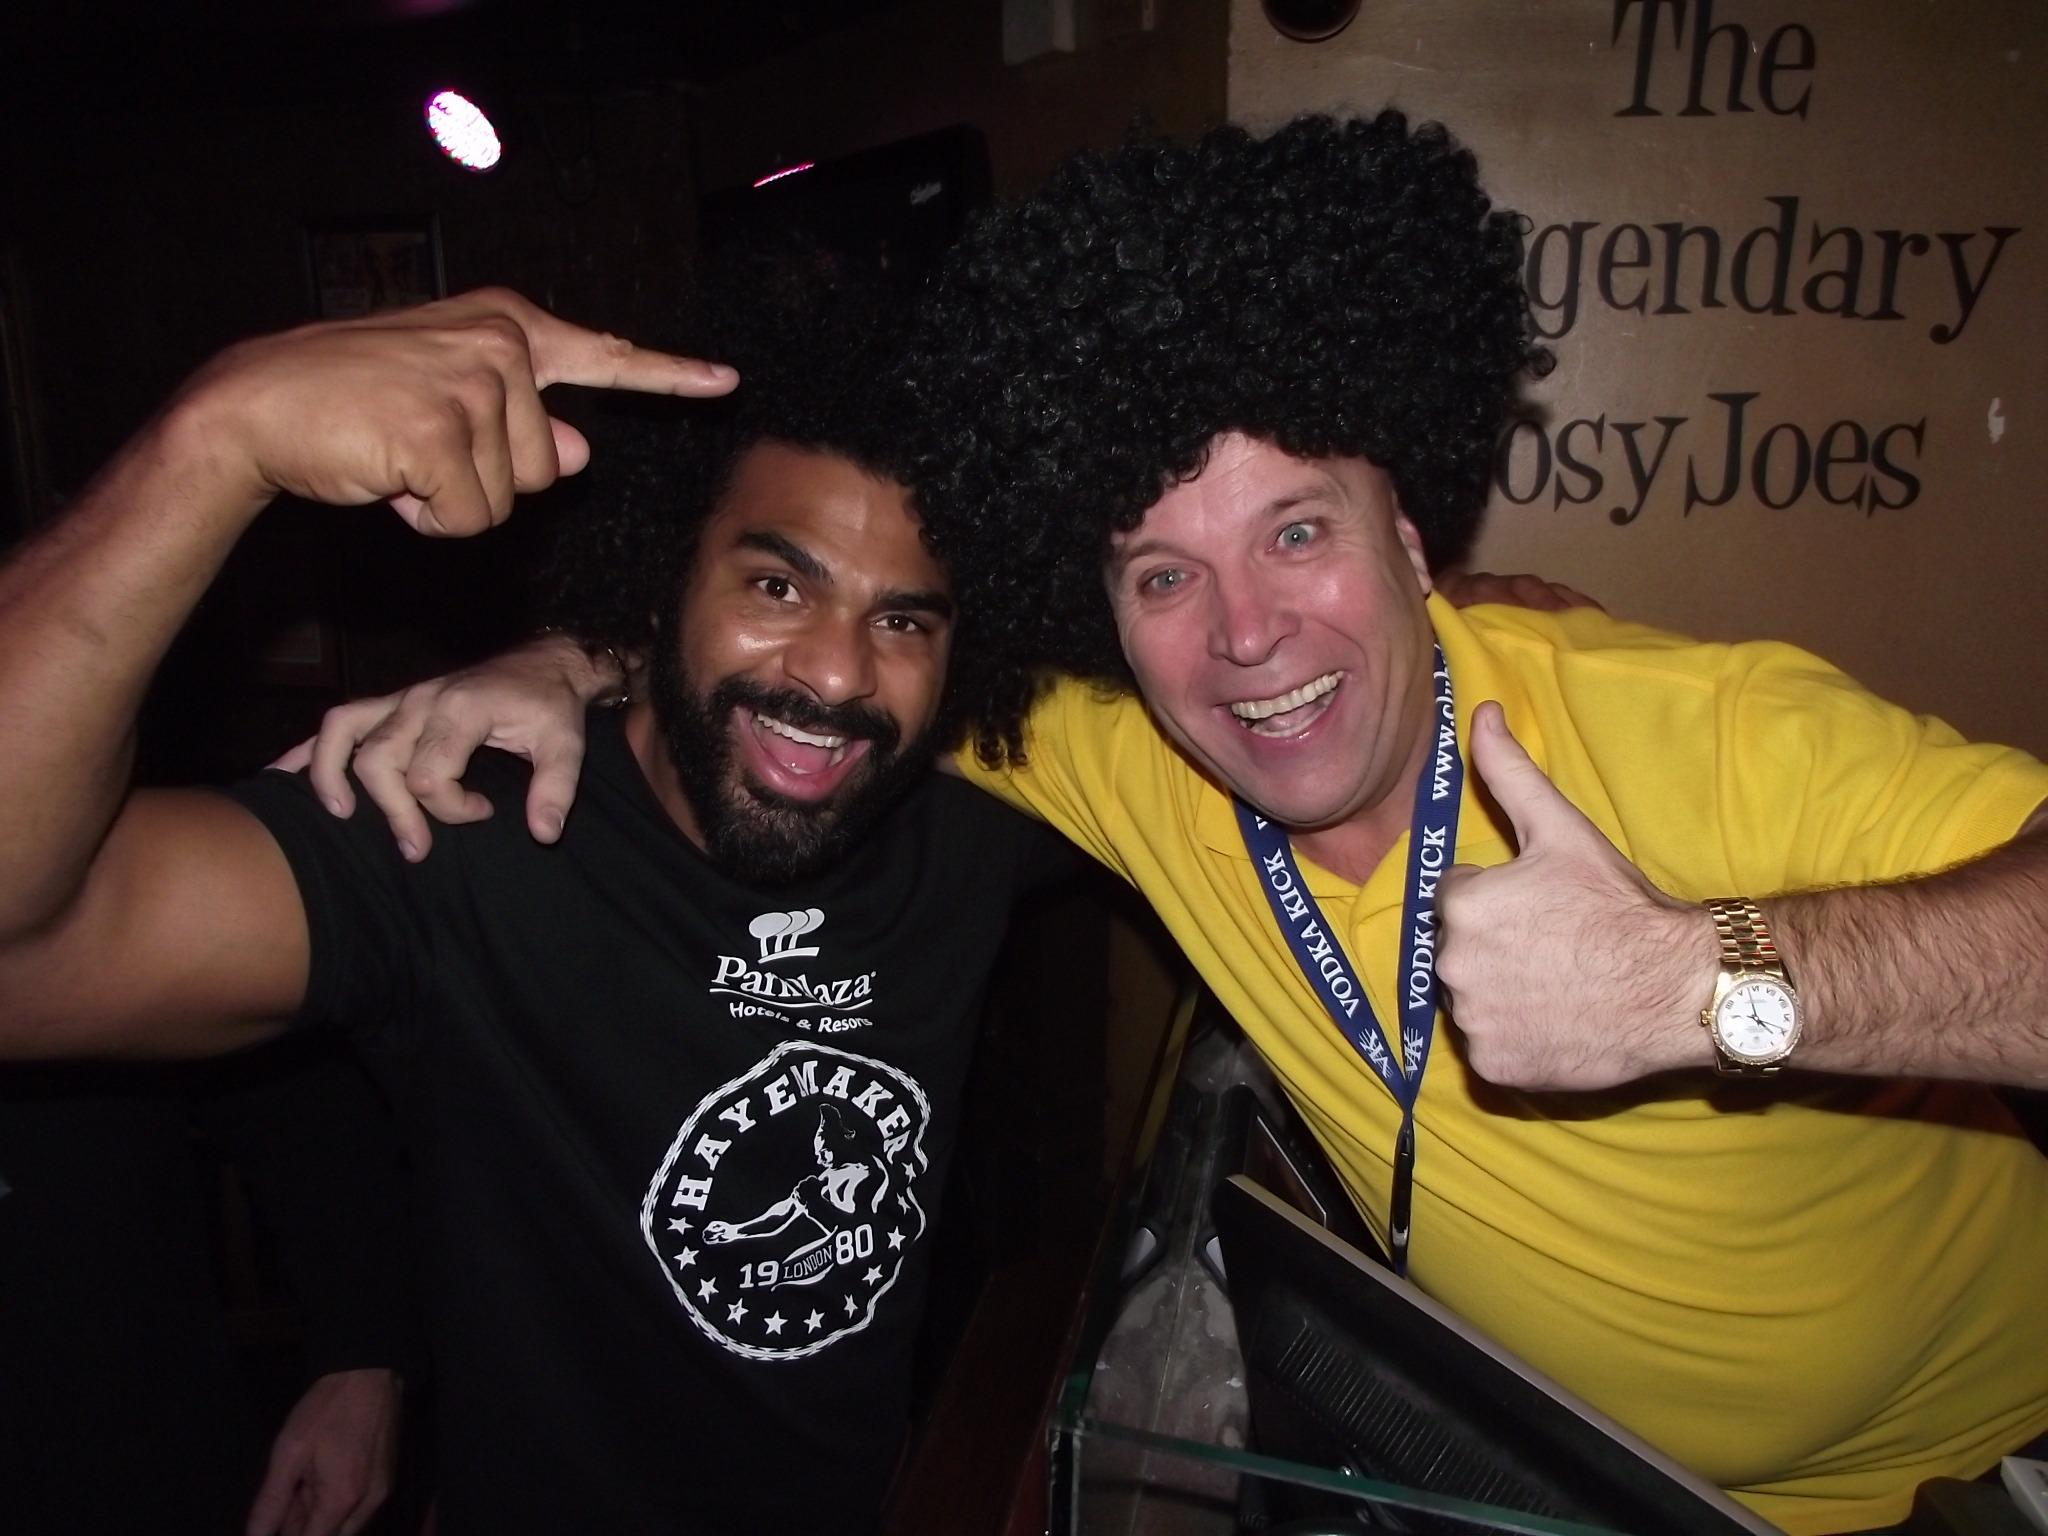 RT @WeePhillie: We still have @mrdavidhaye here with us @Cosyjoes ...pop in if you're around! http://t.co/4y6b8P0aFJ